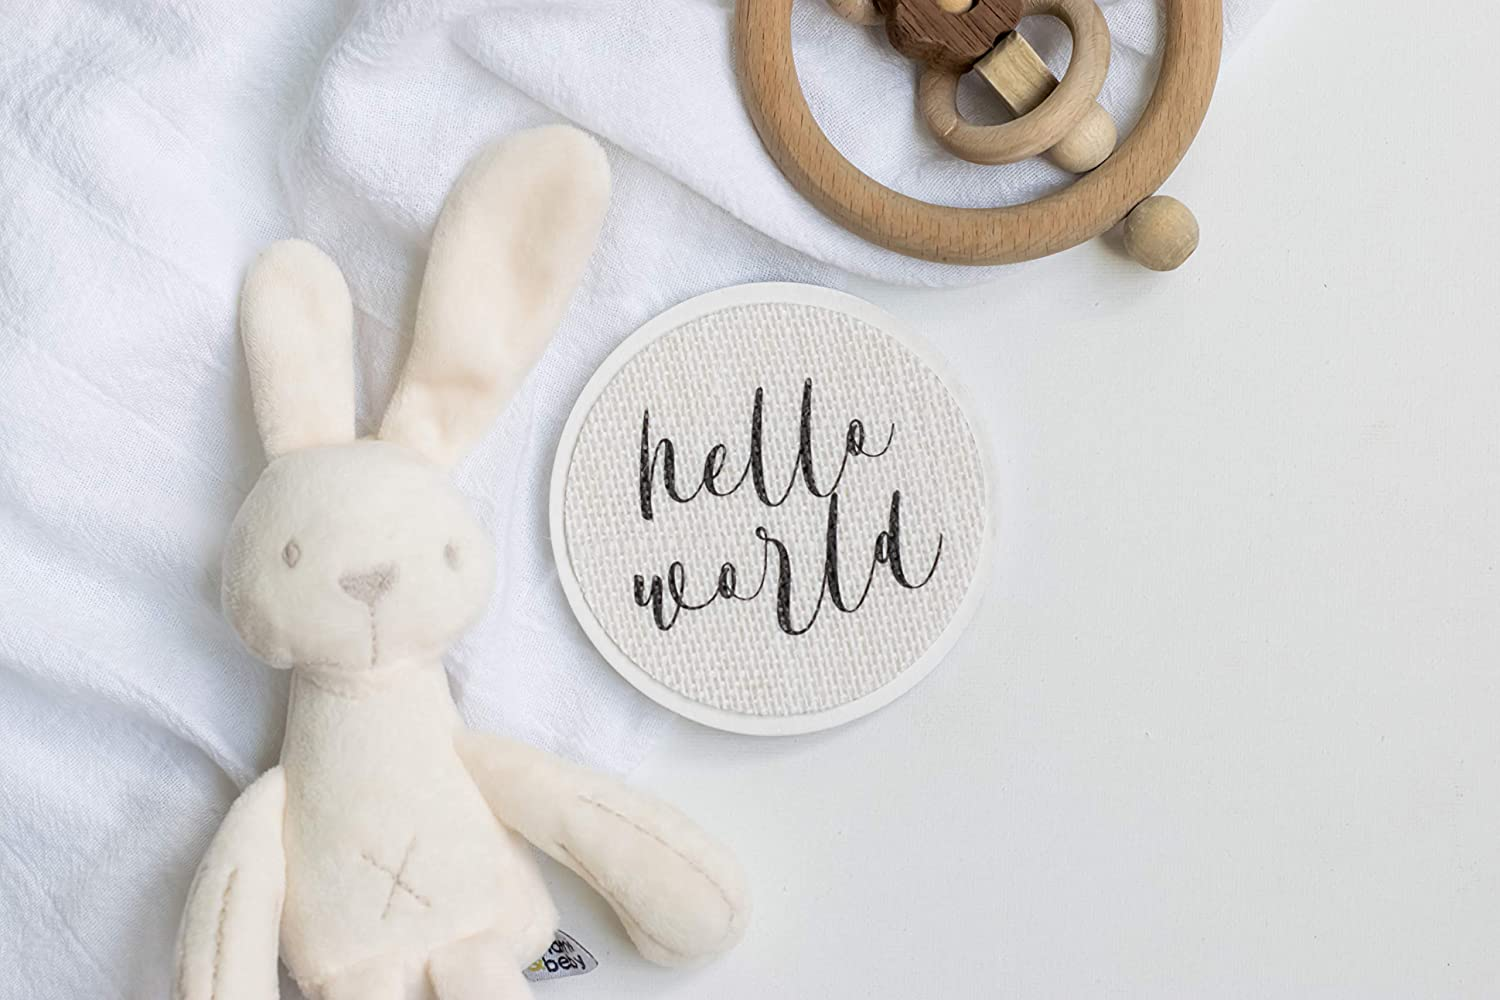 We Are Having A Baby Baby Photo Prop Newborn Photography Hospital Announcement Milestone Card Disc Baby Wood Burlap Plaque Sign